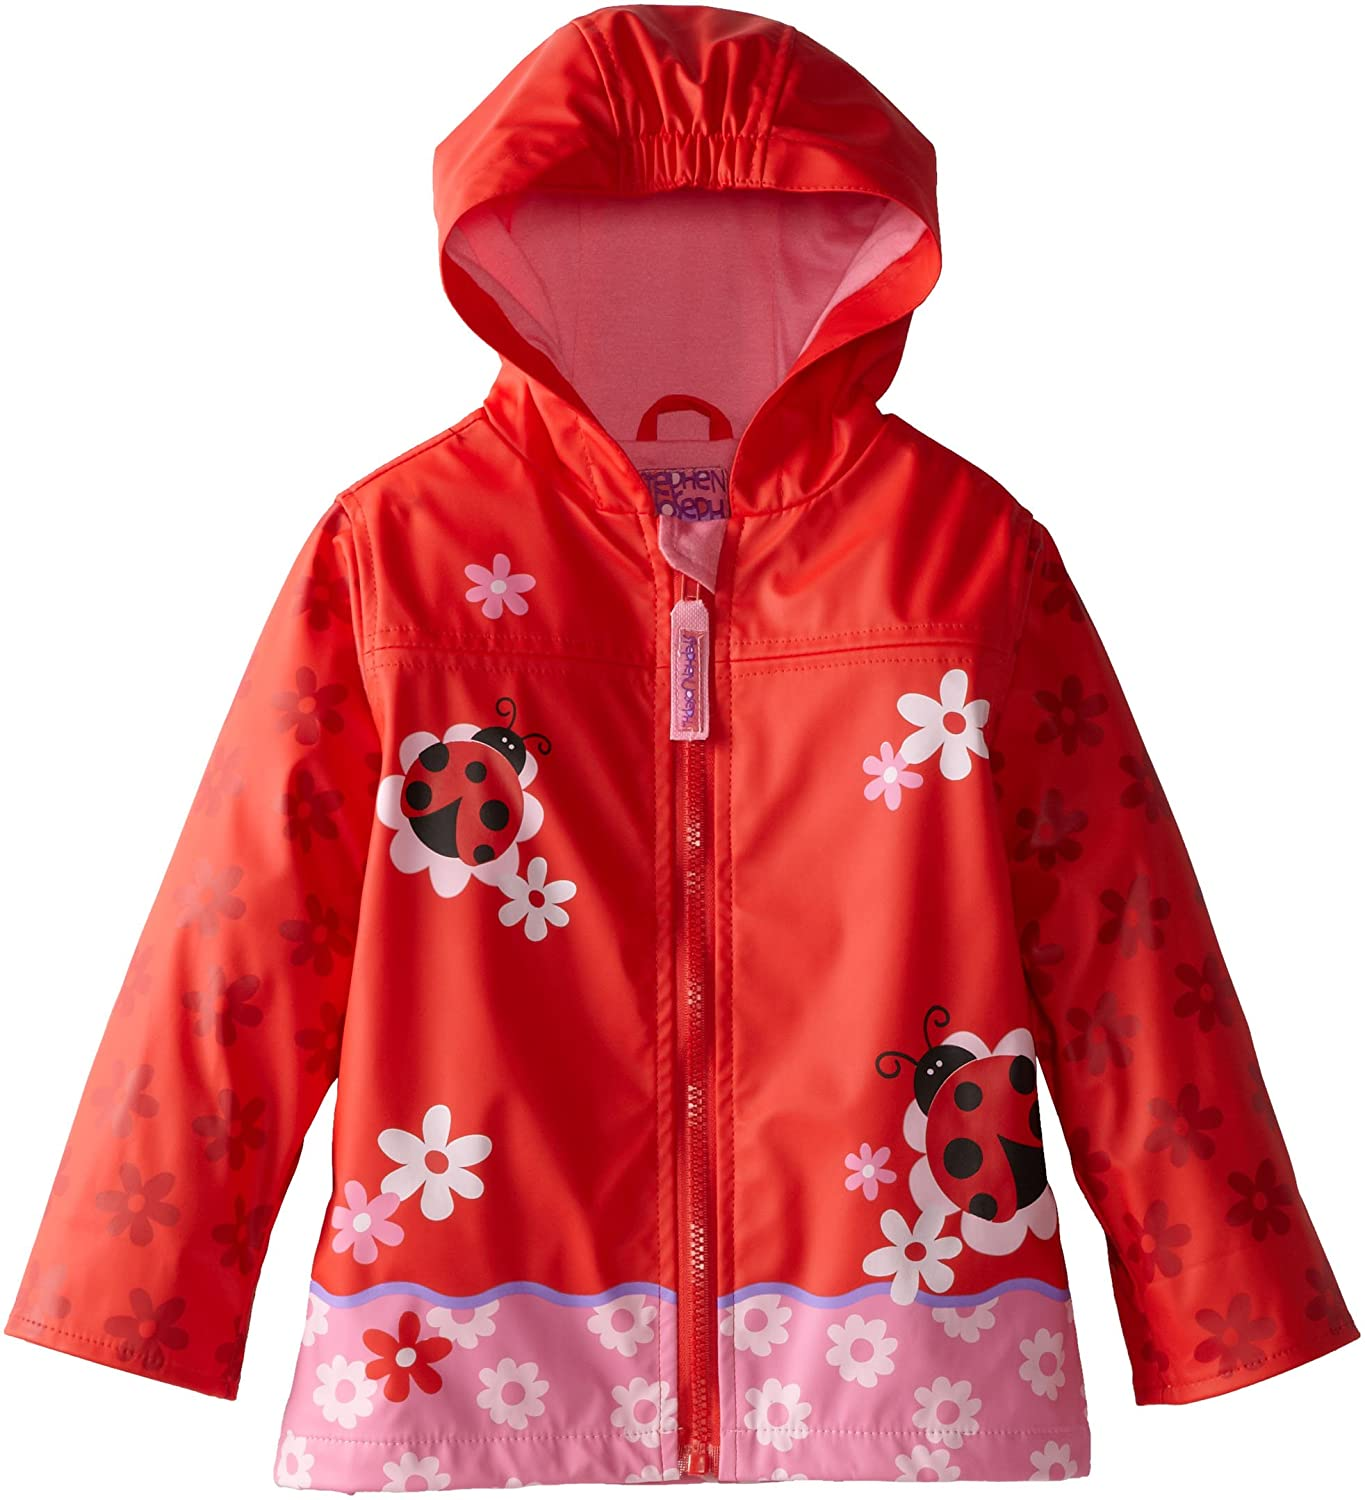 Stephen Joseph girls Little Girls Raincoat Flower SJ860121 2T